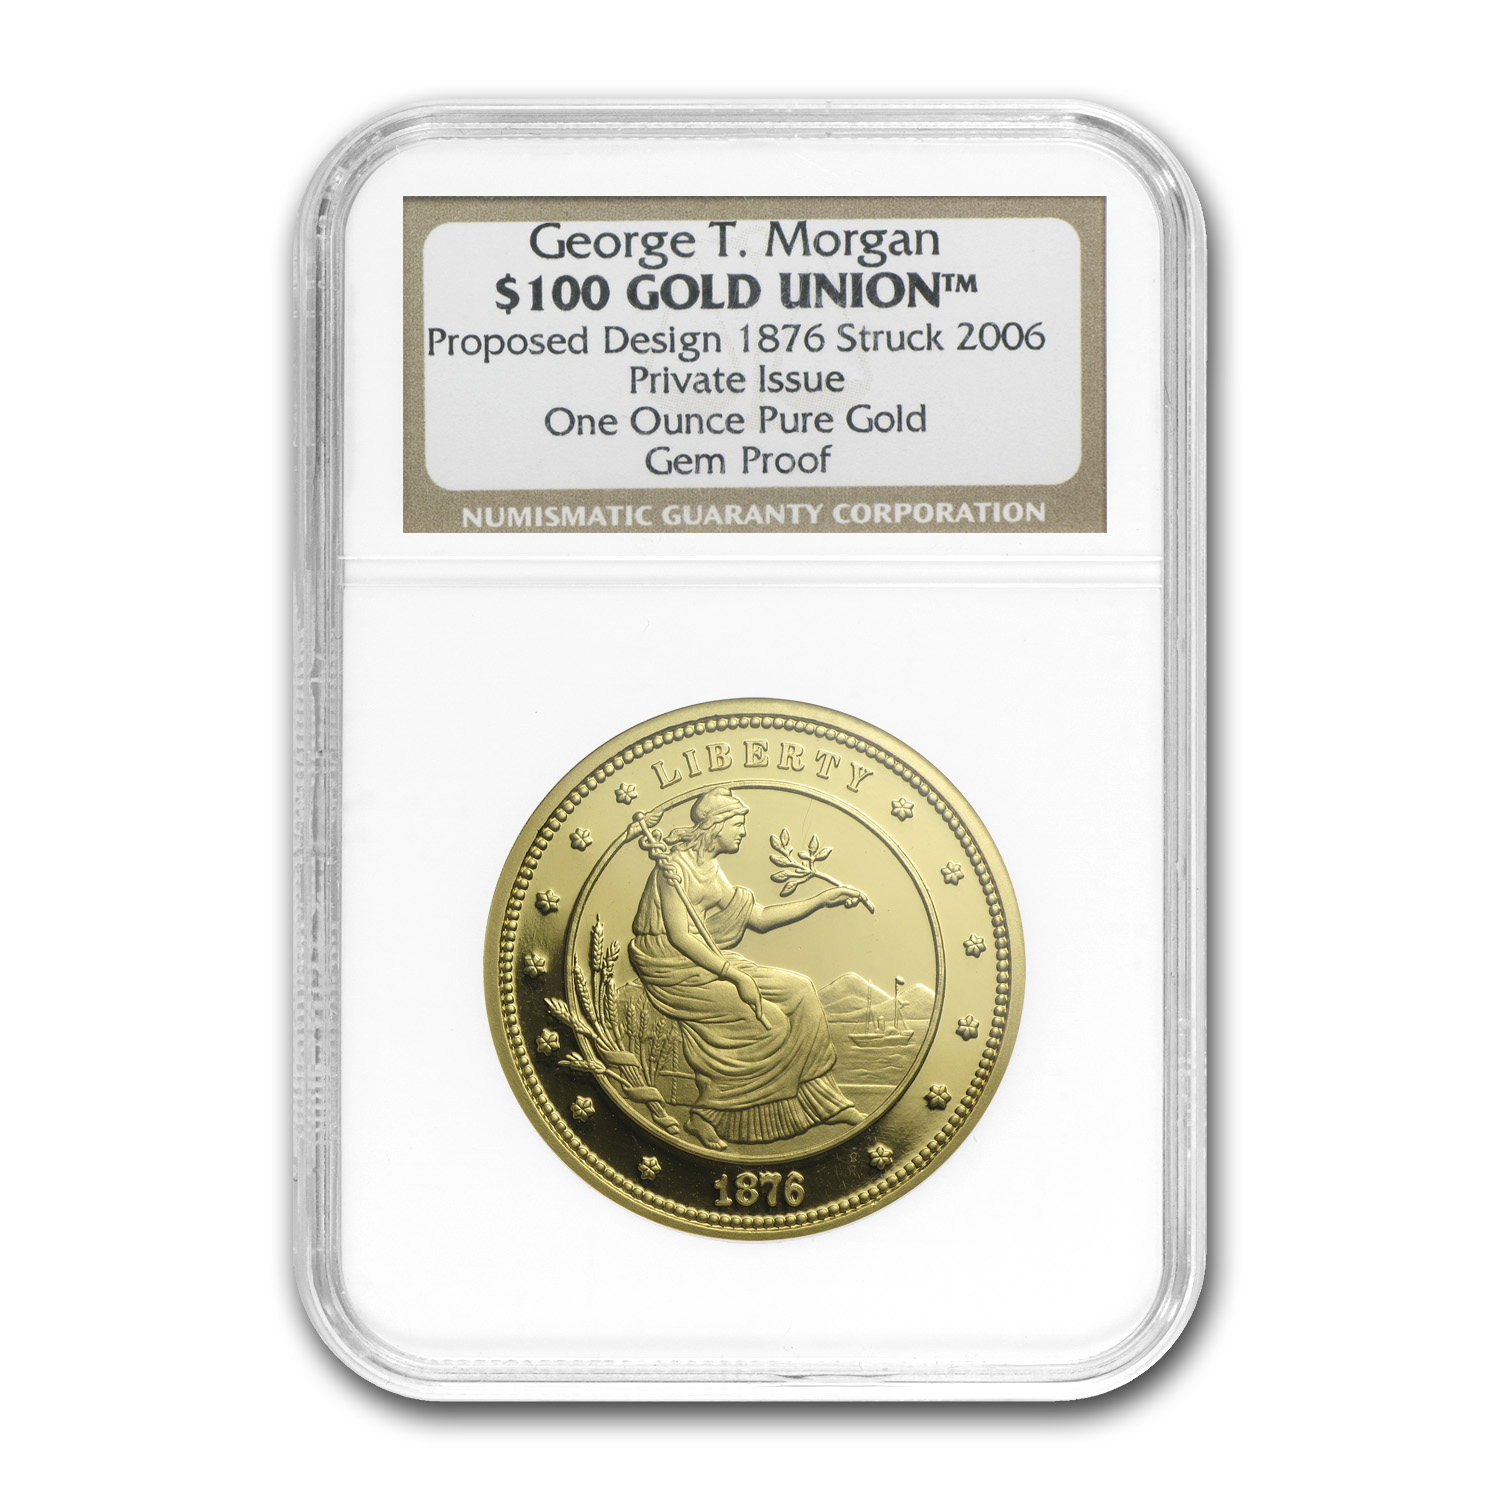 1 oz Gold Round - $100 Gold Union George T. Morgan Proof NGC